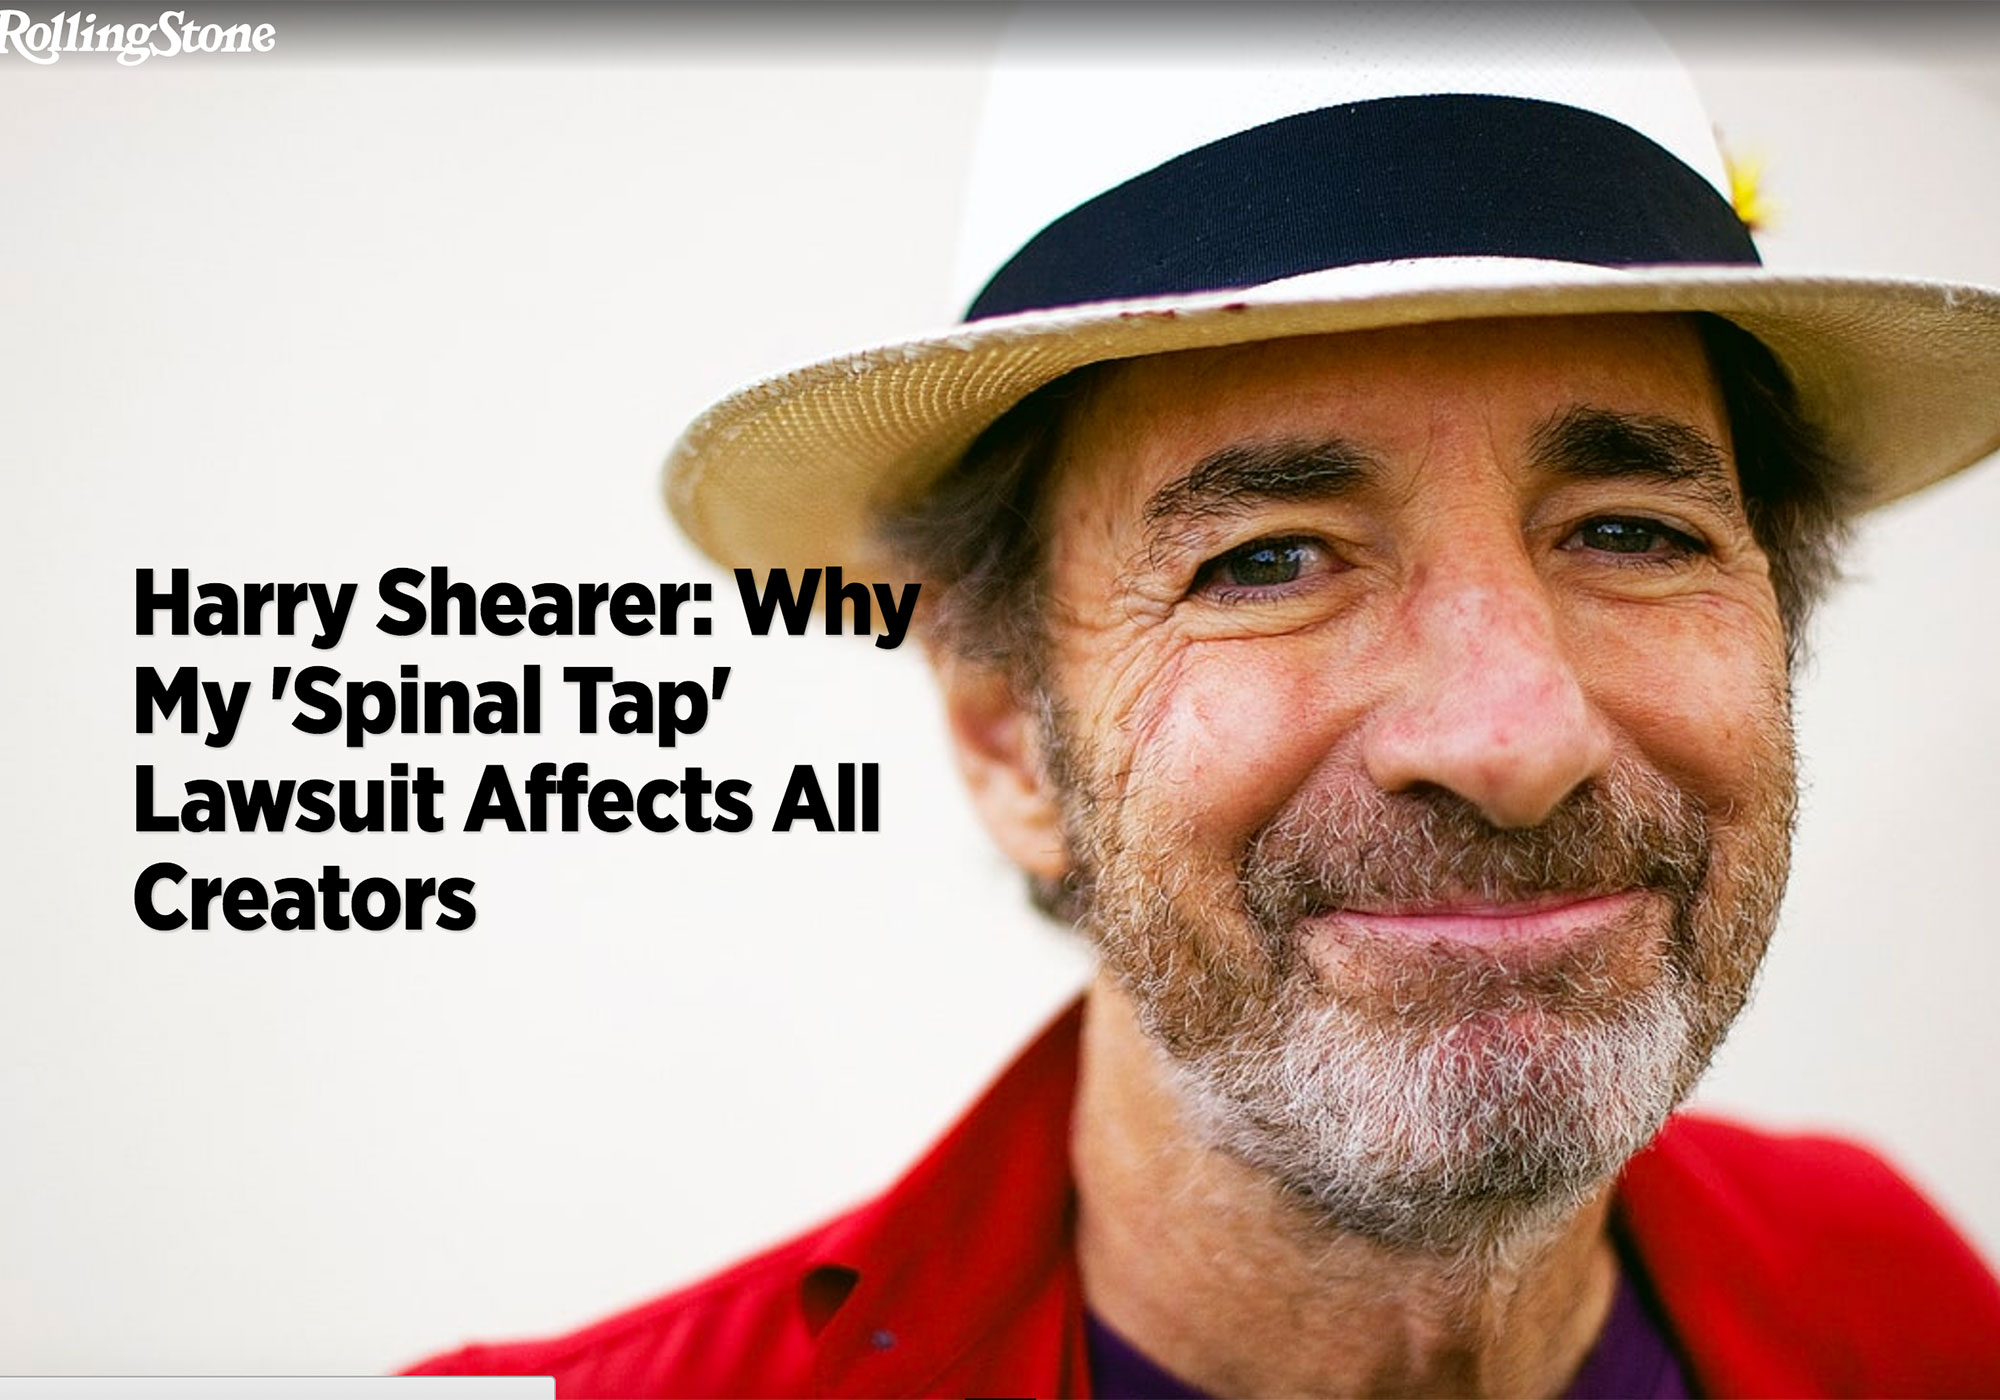 Fairness Rocks News Harry Shearer: Why My 'Spinal Tap' Lawsuit Affects All Creators